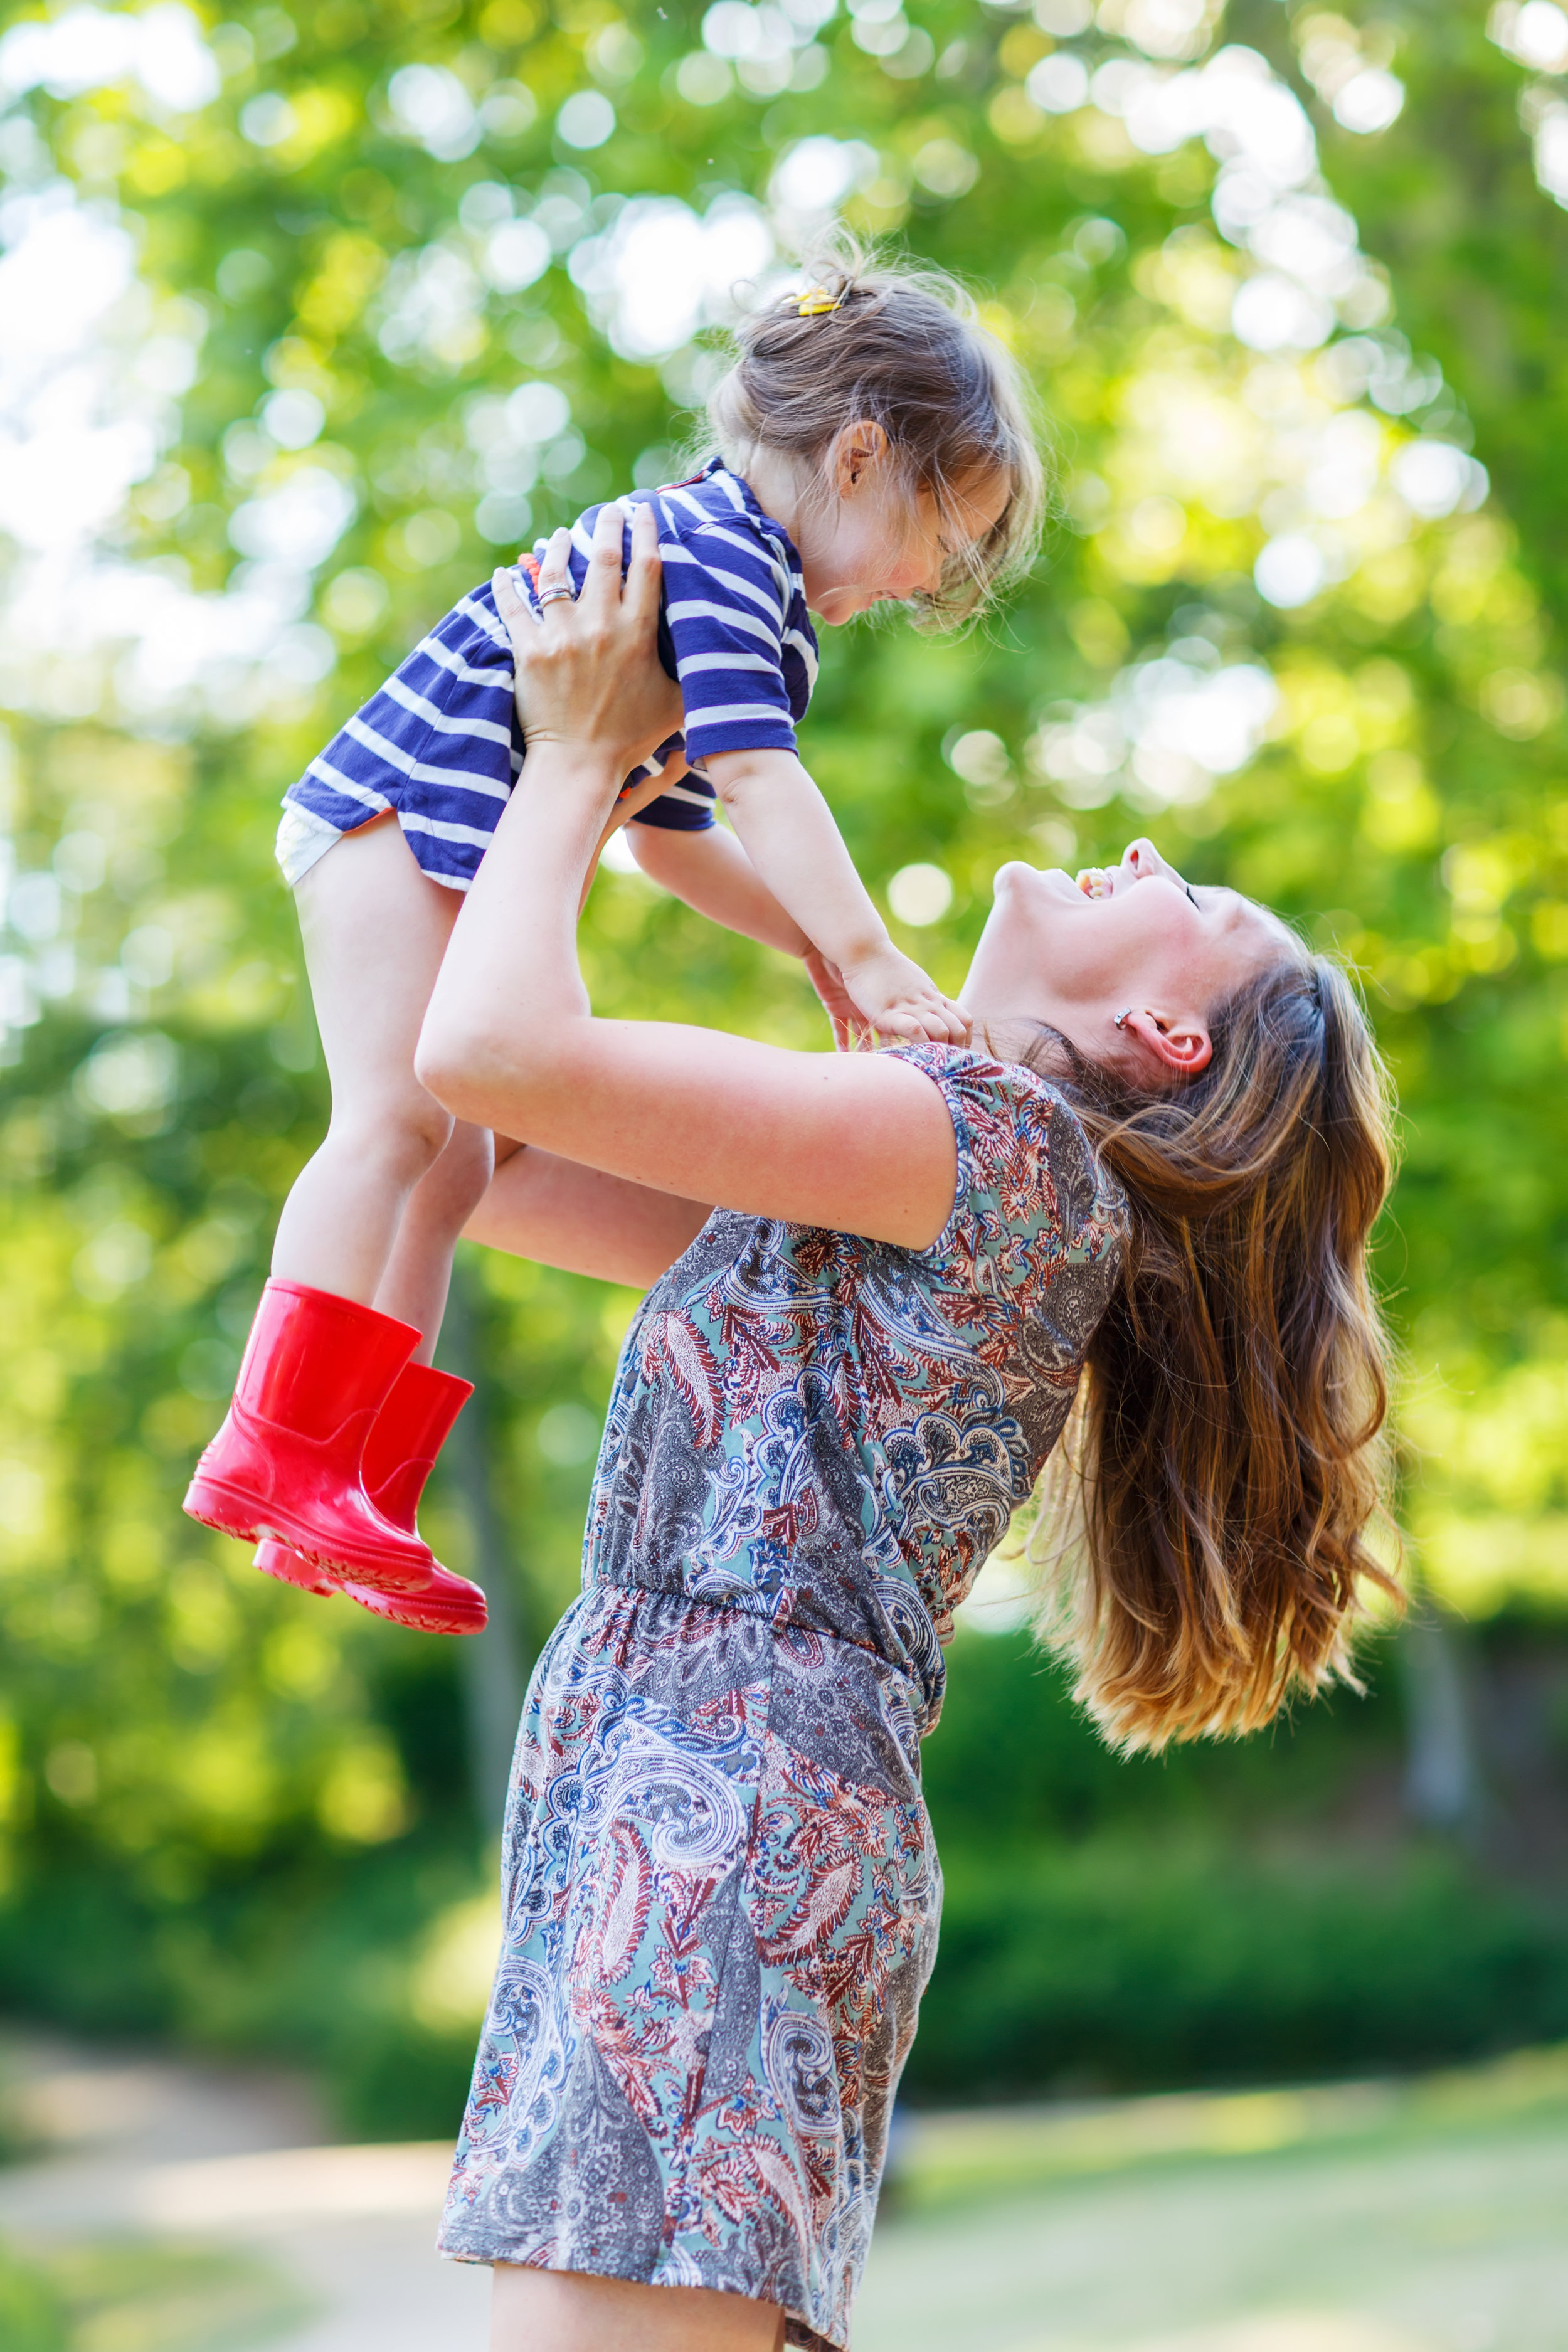 bigstock-Beautiful-Young-Mother-Holding-76133777.jpg